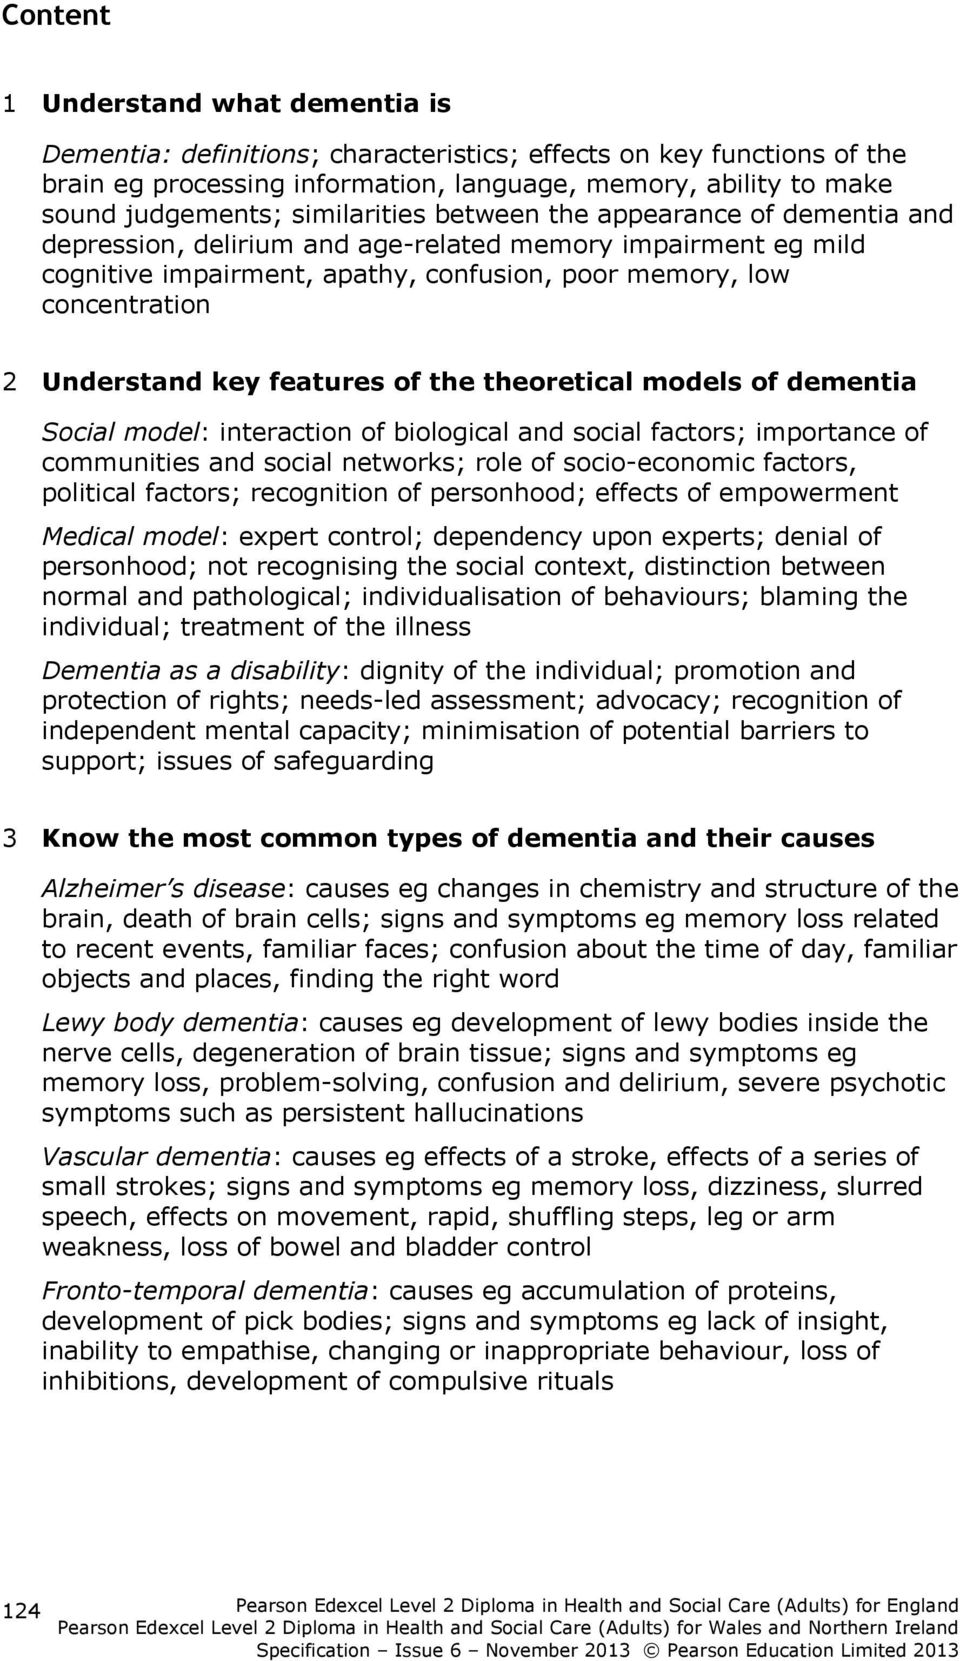 key features of the theoretical models of dementia Social model: interaction of biological and social factors; importance of communities and social networks; role of socio-economic factors, political